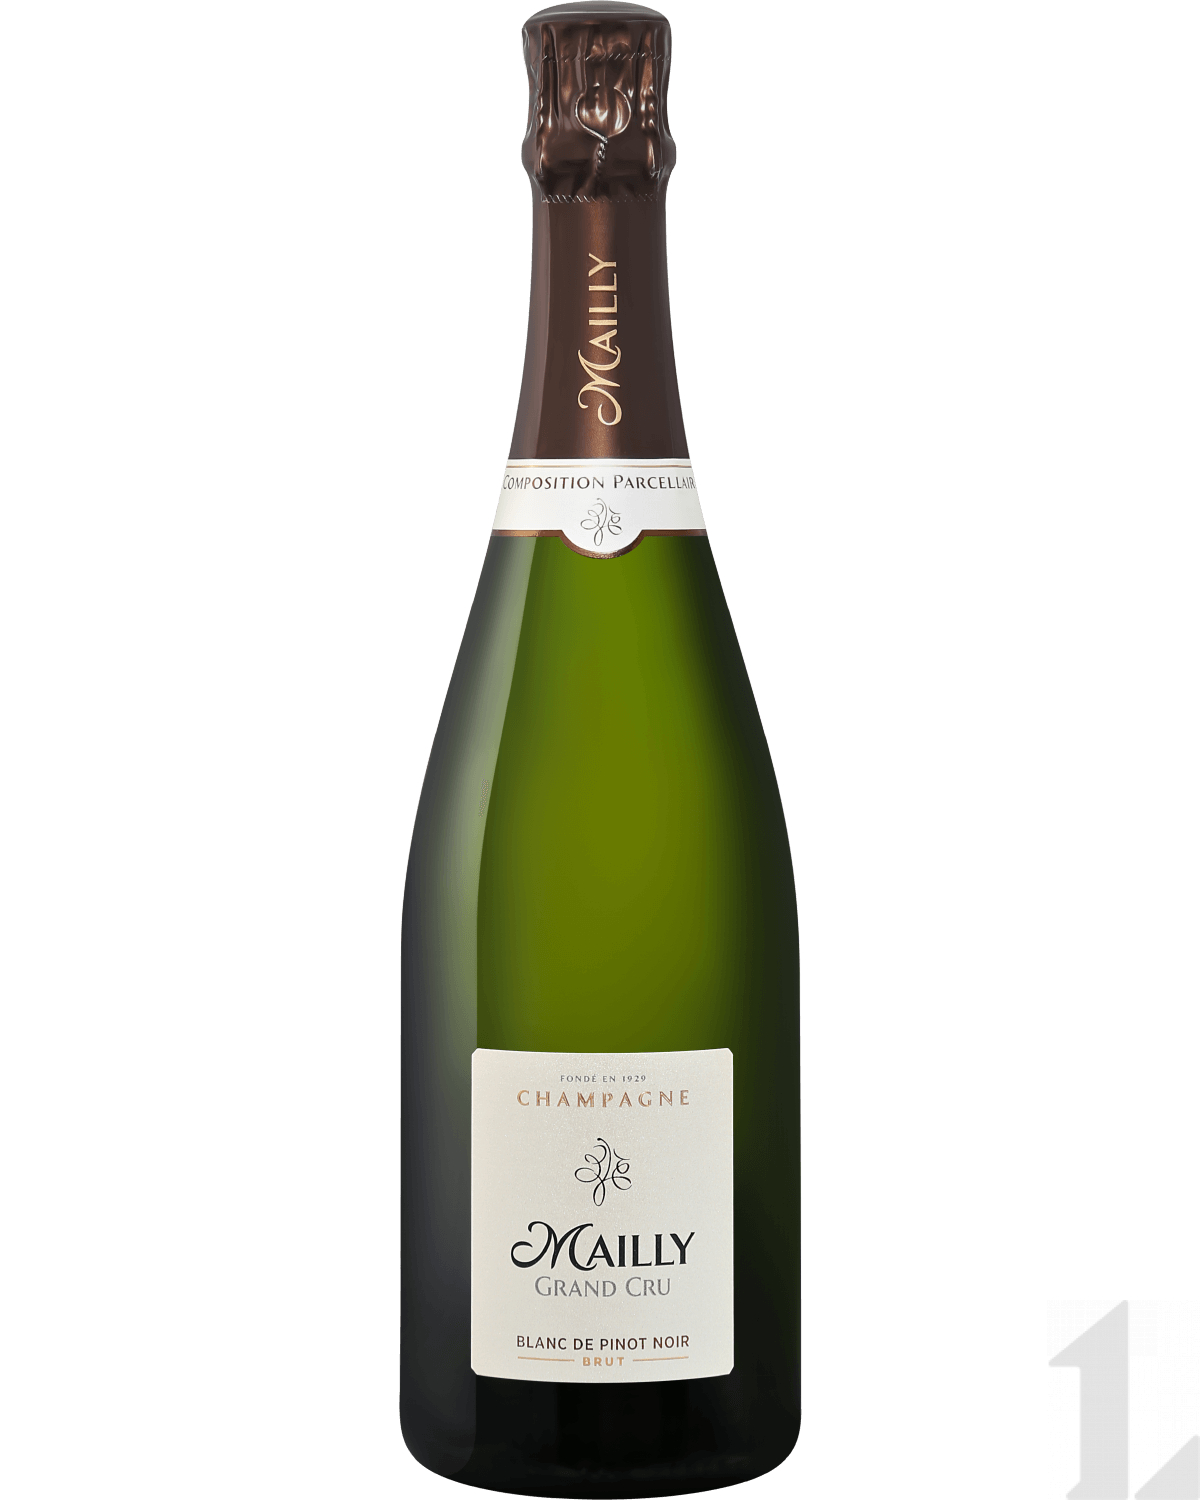 Игристое вино Mailly Grand Cru Brut Blanc de Pinot Noir Champagne АОС 0.75л